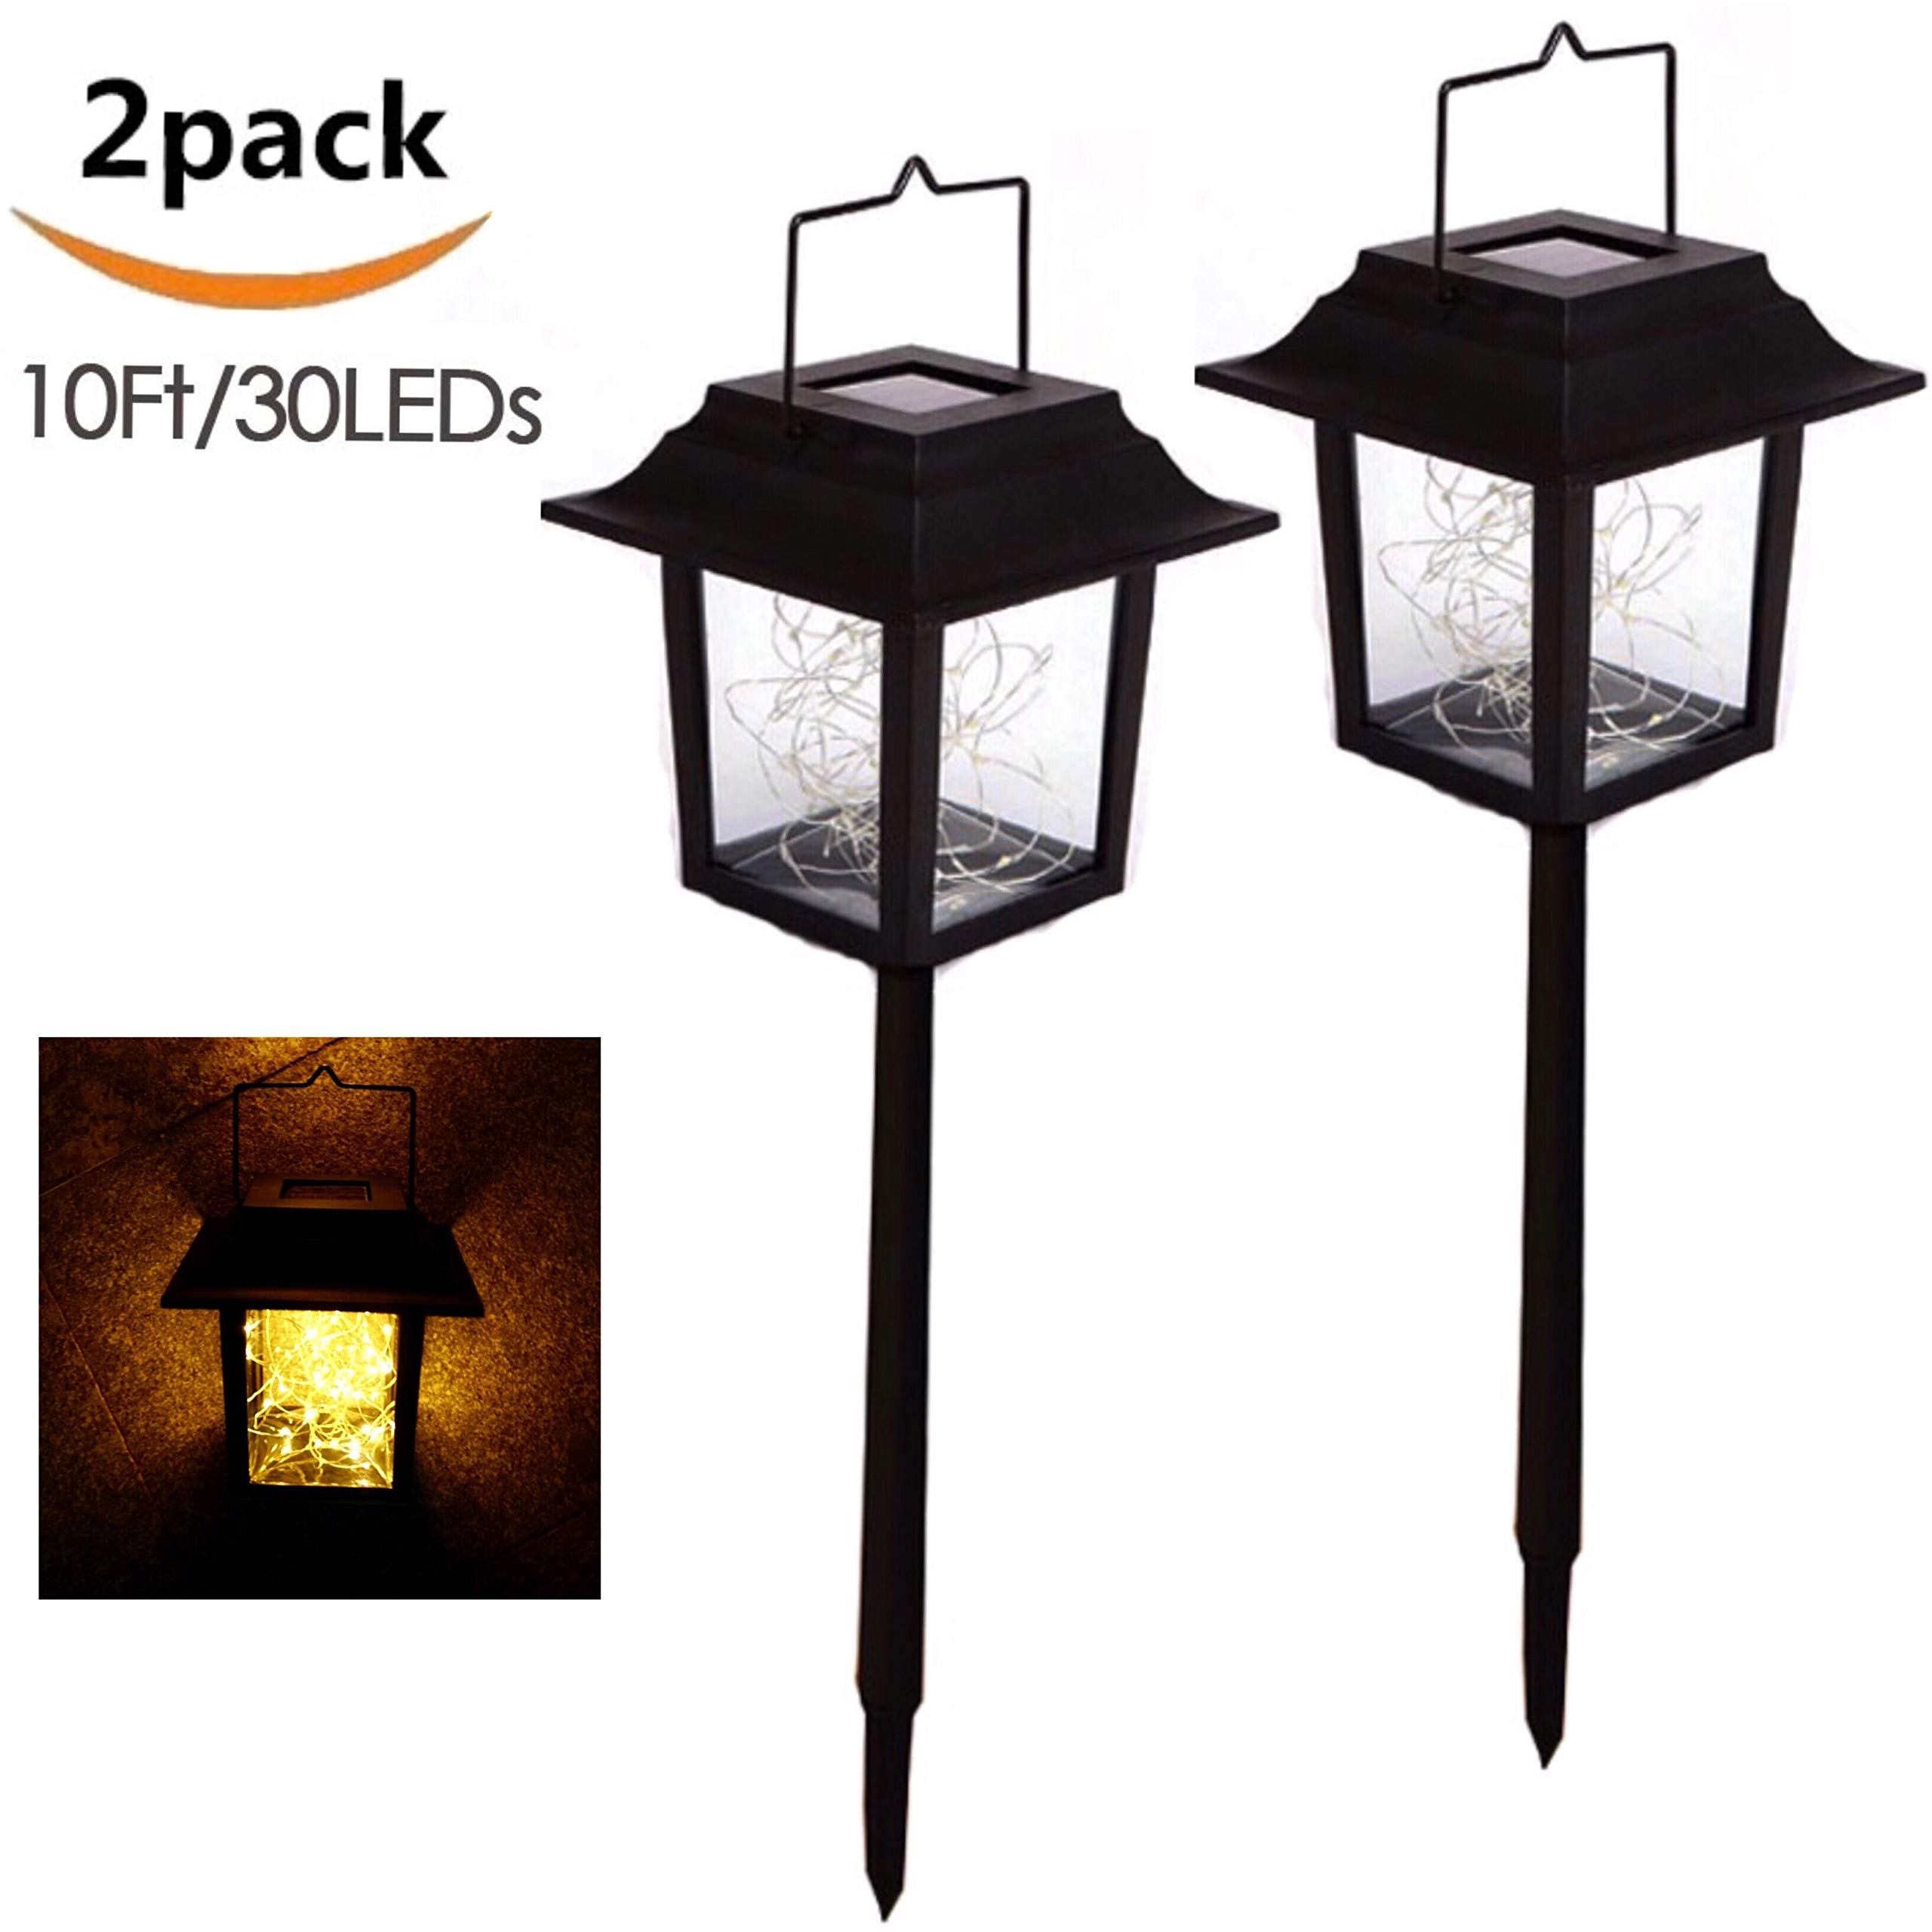 Garden Solar Stake Lights Outdoor Solar Pathway Lights Waterproof Solar Landscape Lights for Garden, Path, Yard, Patio, Driveway, Walkway, Lawn - 2 Pack(String Lights-Warm White)